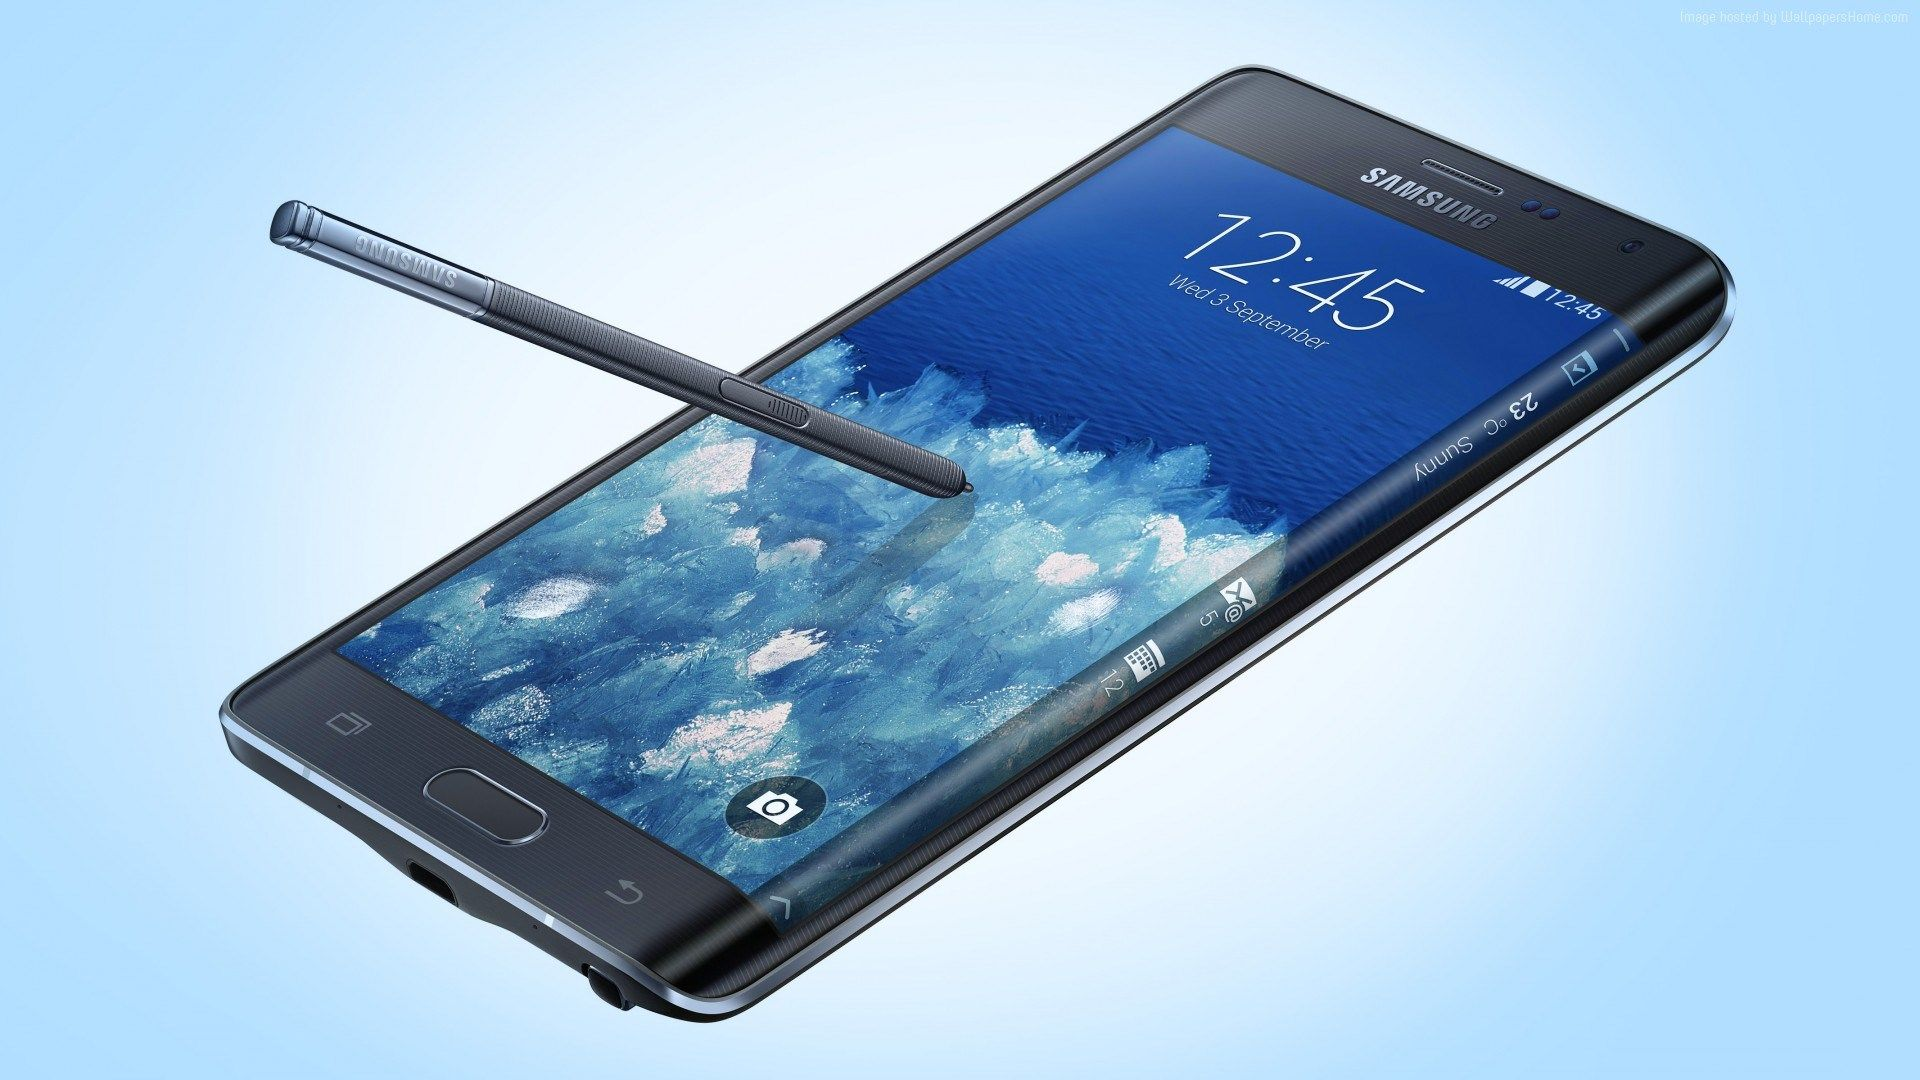 Samsung Galaxy Note Edge Wallpaper Hi Tech